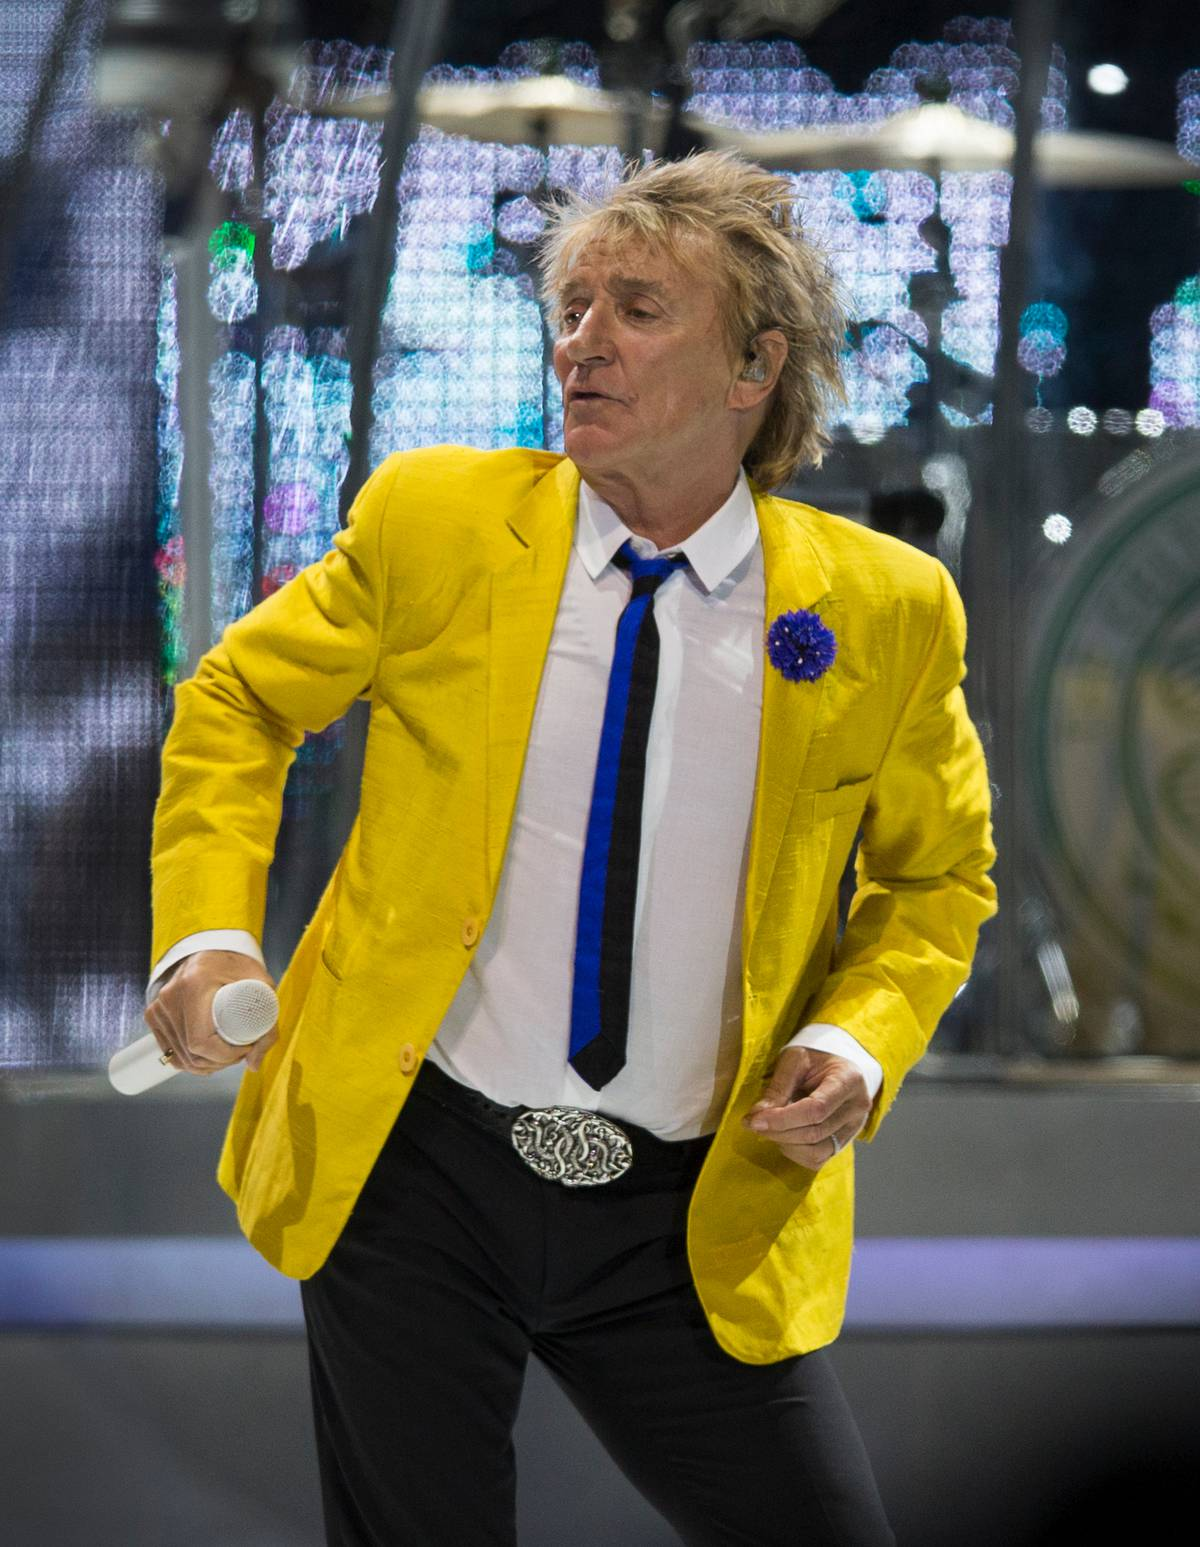 'Hugely disappointed': Rod Stewart reschedules Mission Concert